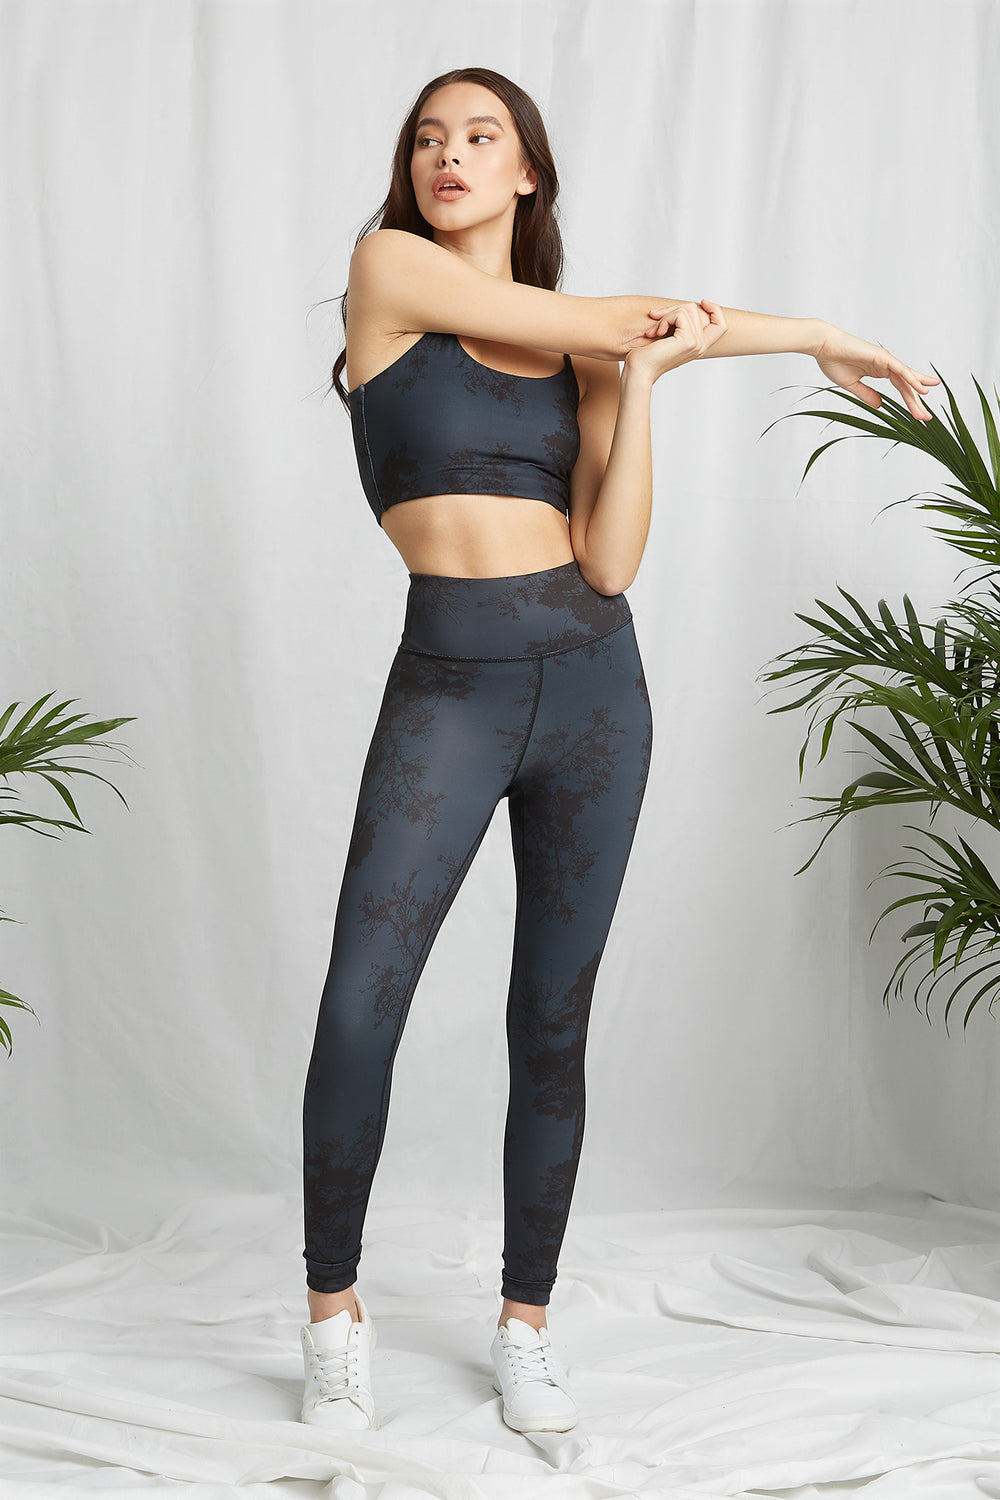 REPREVE® Eco-Friendly Recycled Polyester Reversable Active Legging Dark Grey